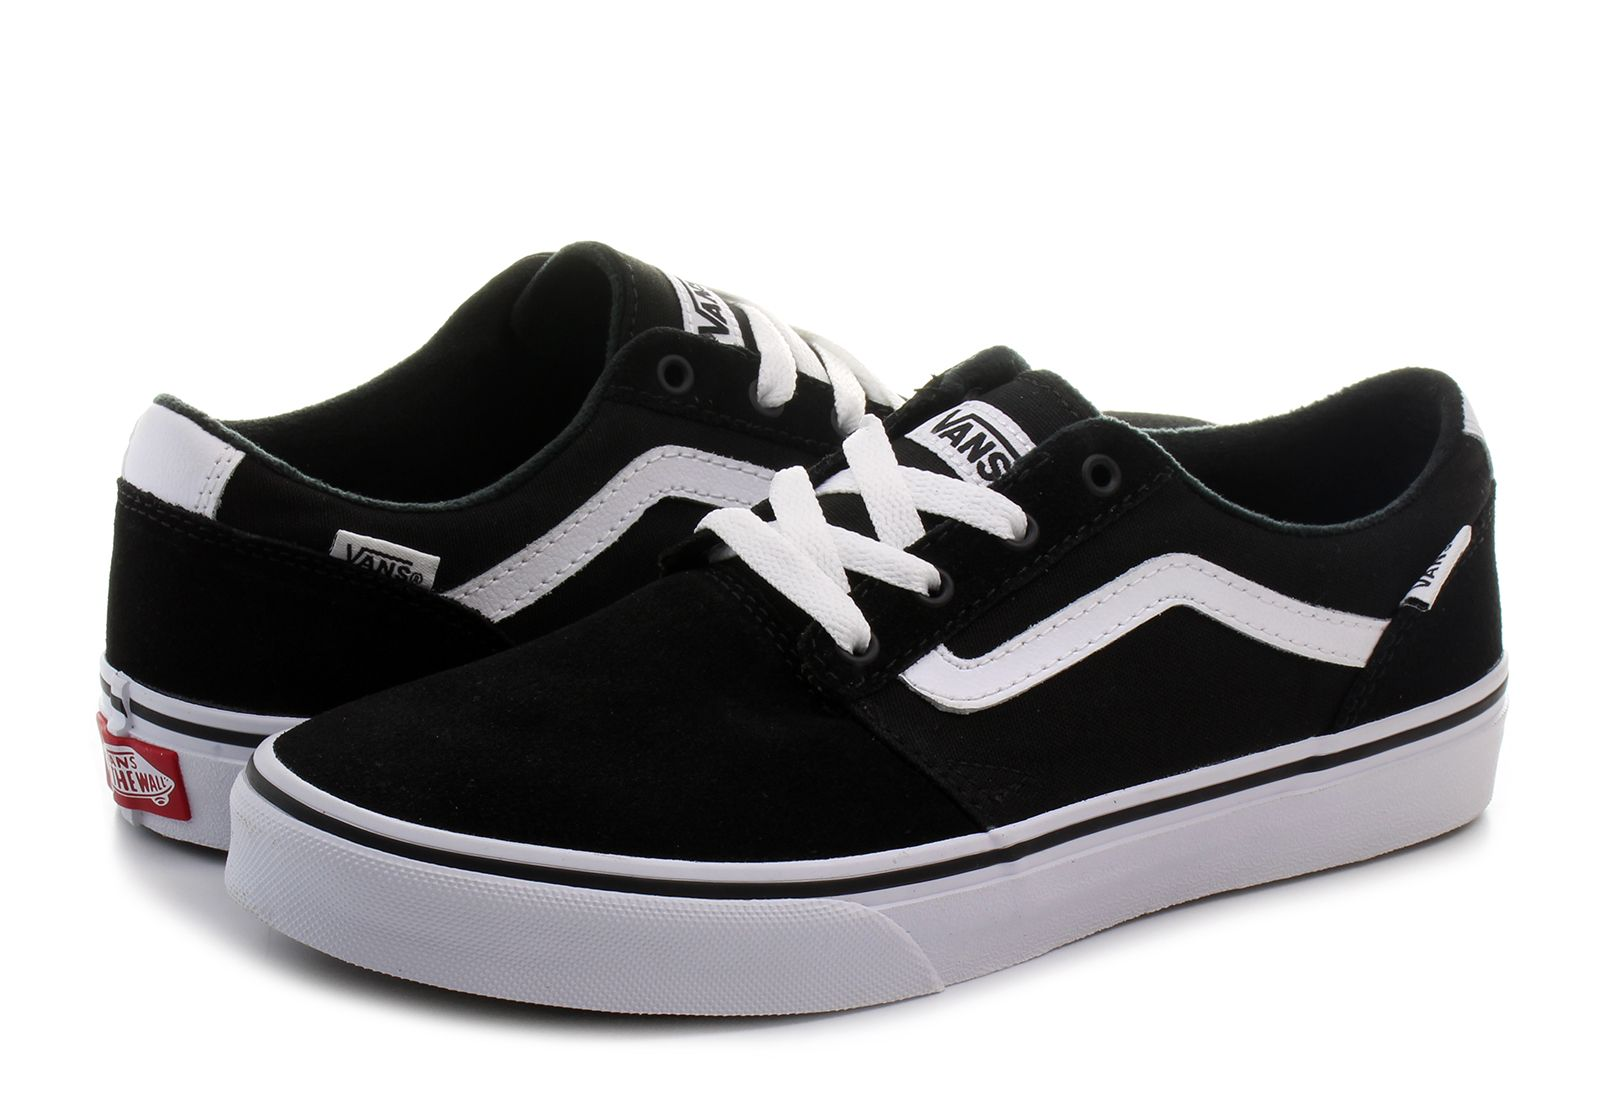 vans sneakers chapman stripe va349siju online shop for sneakers shoes and boots